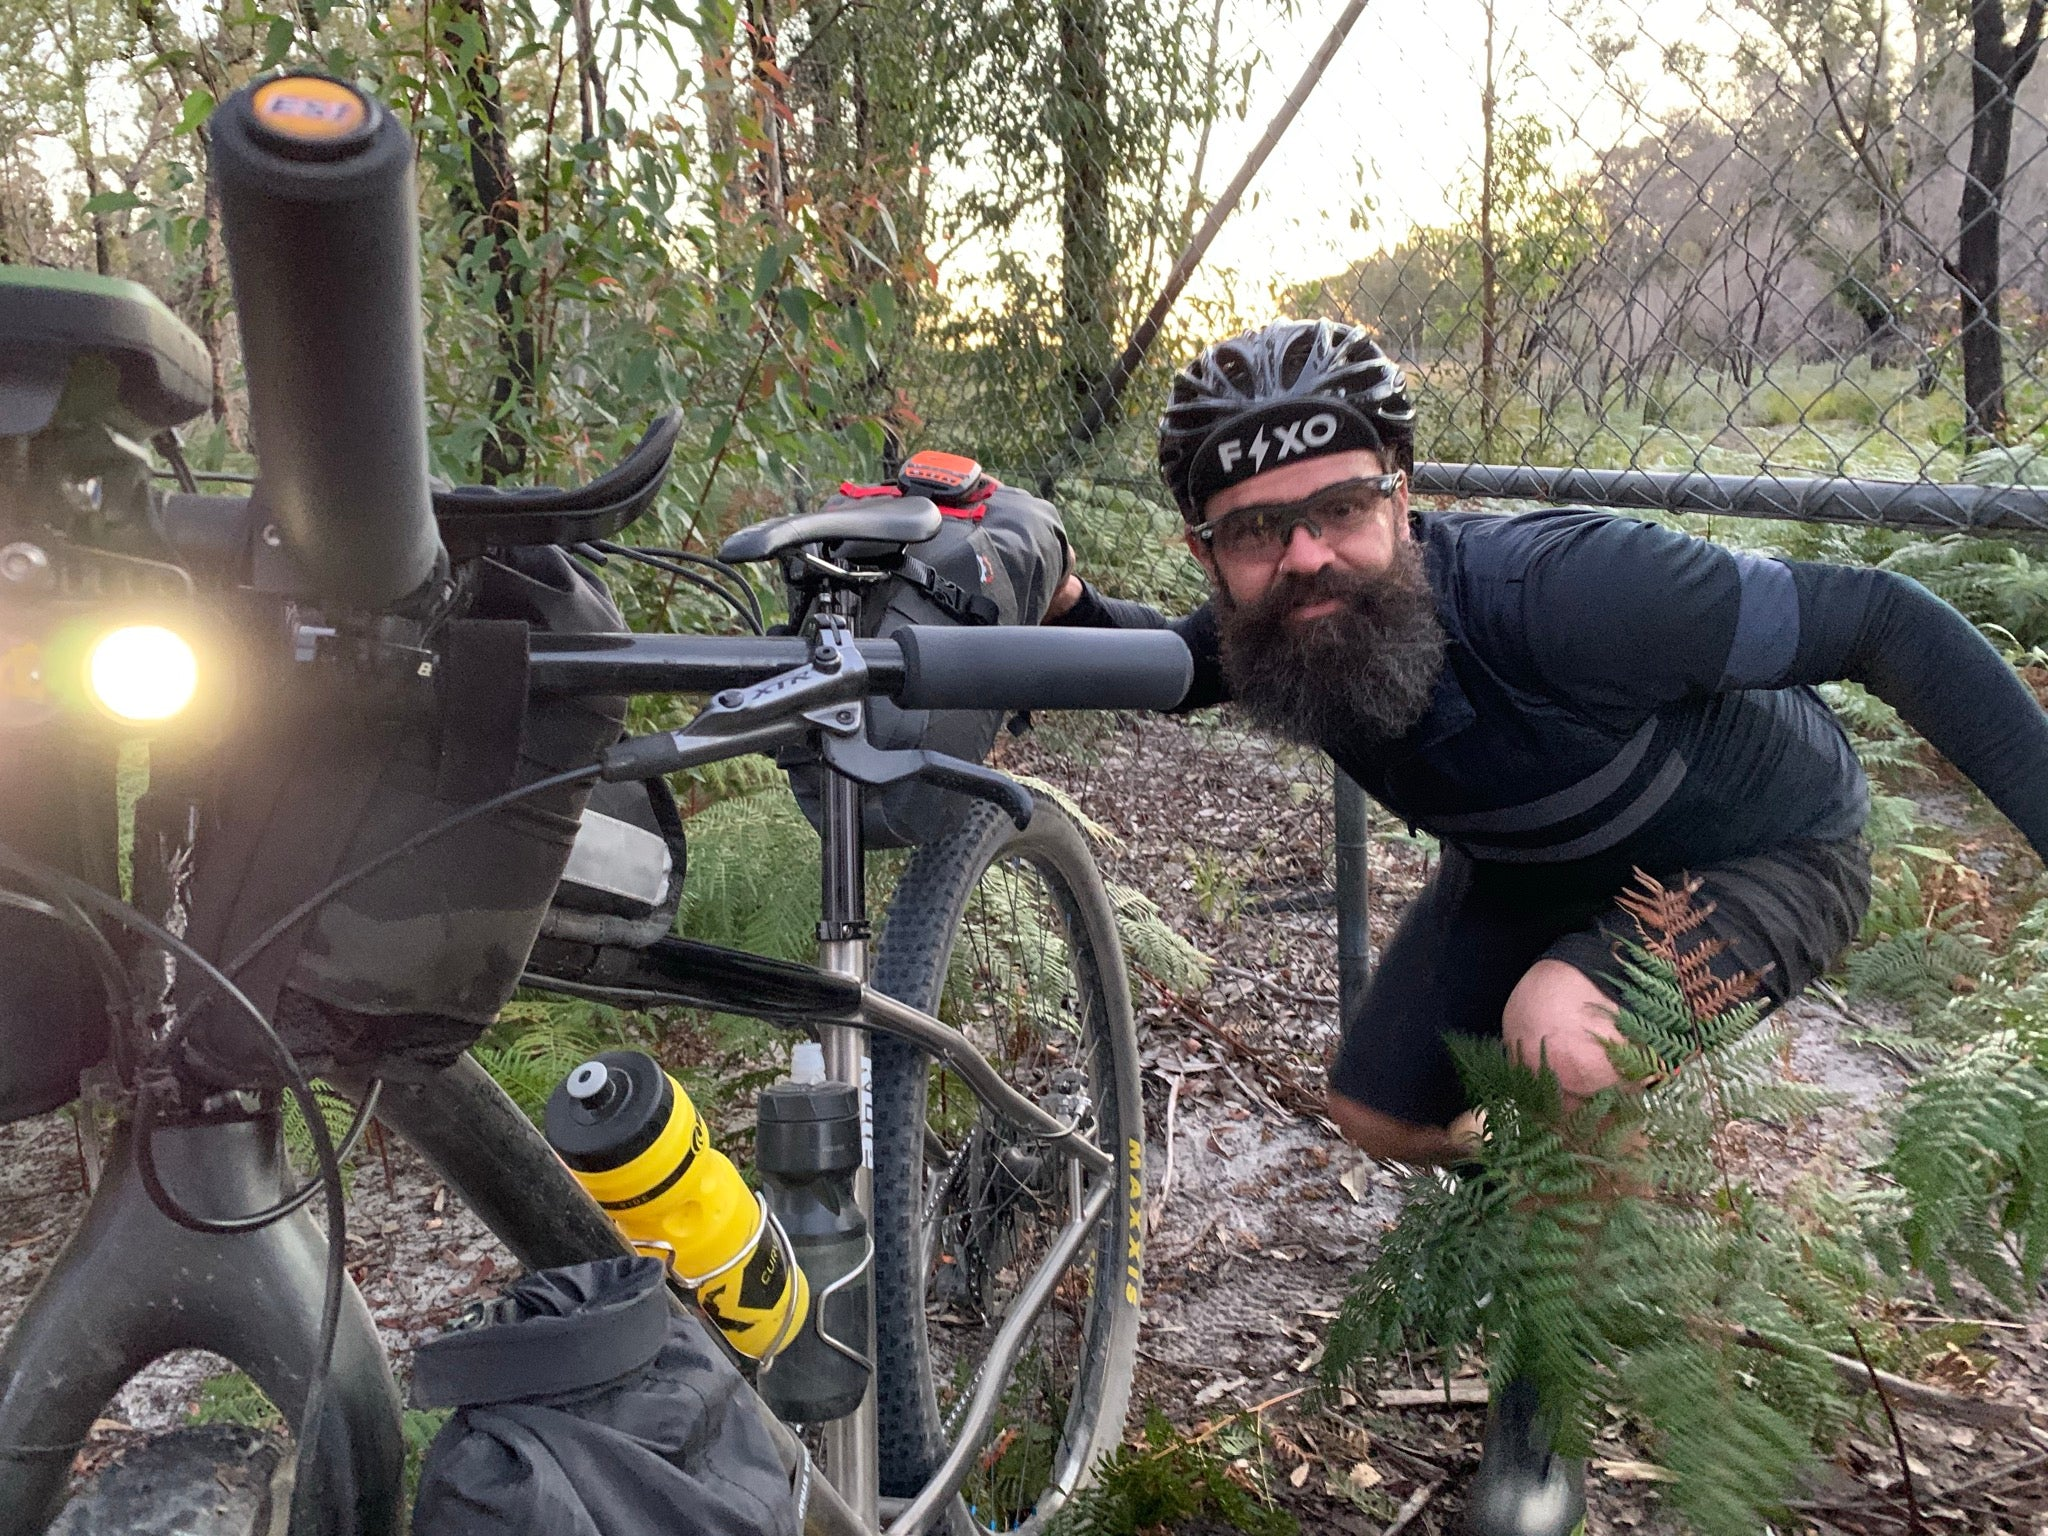 bikepacking adventure trial by fence